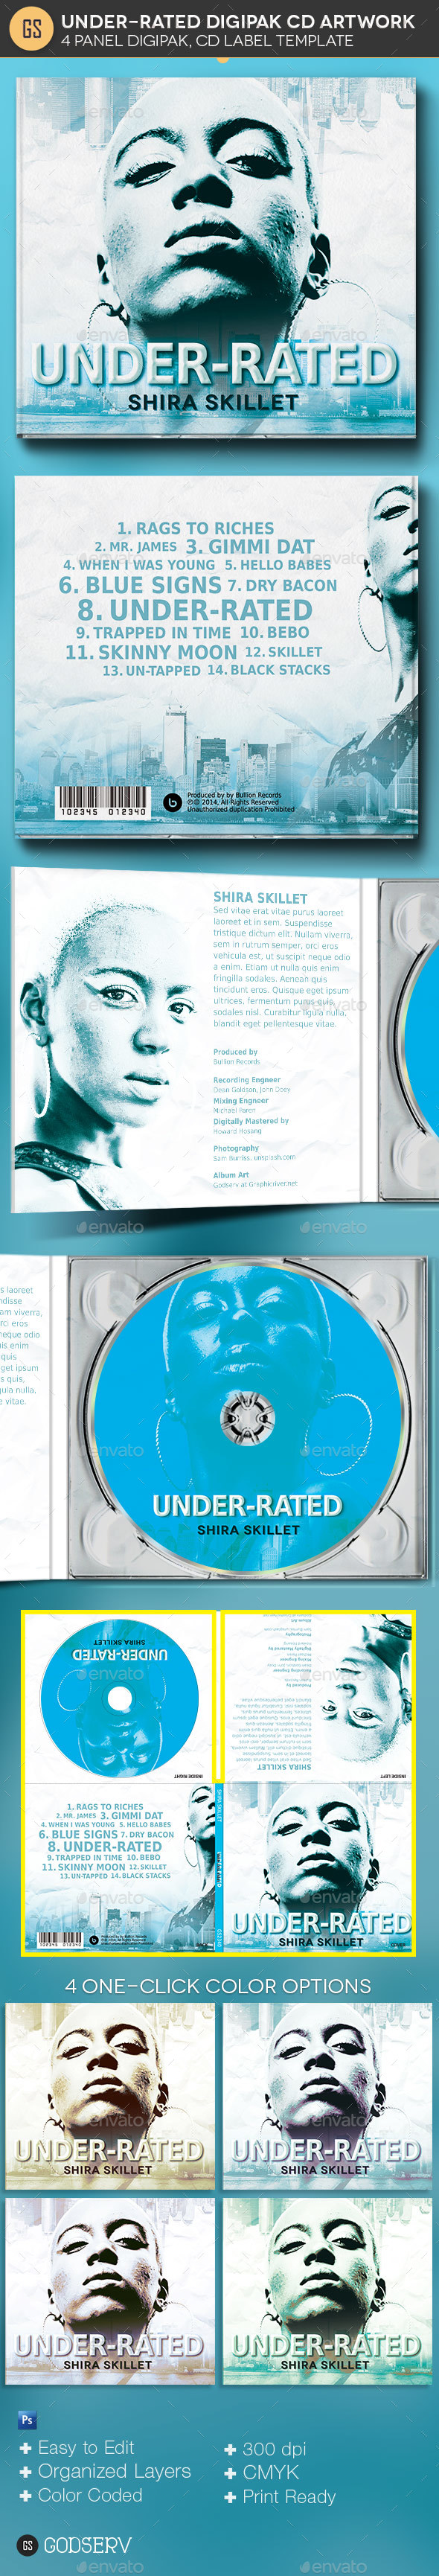 GraphicRiver Underrated 4 Panel Digipak CD Artwork Template 20914616